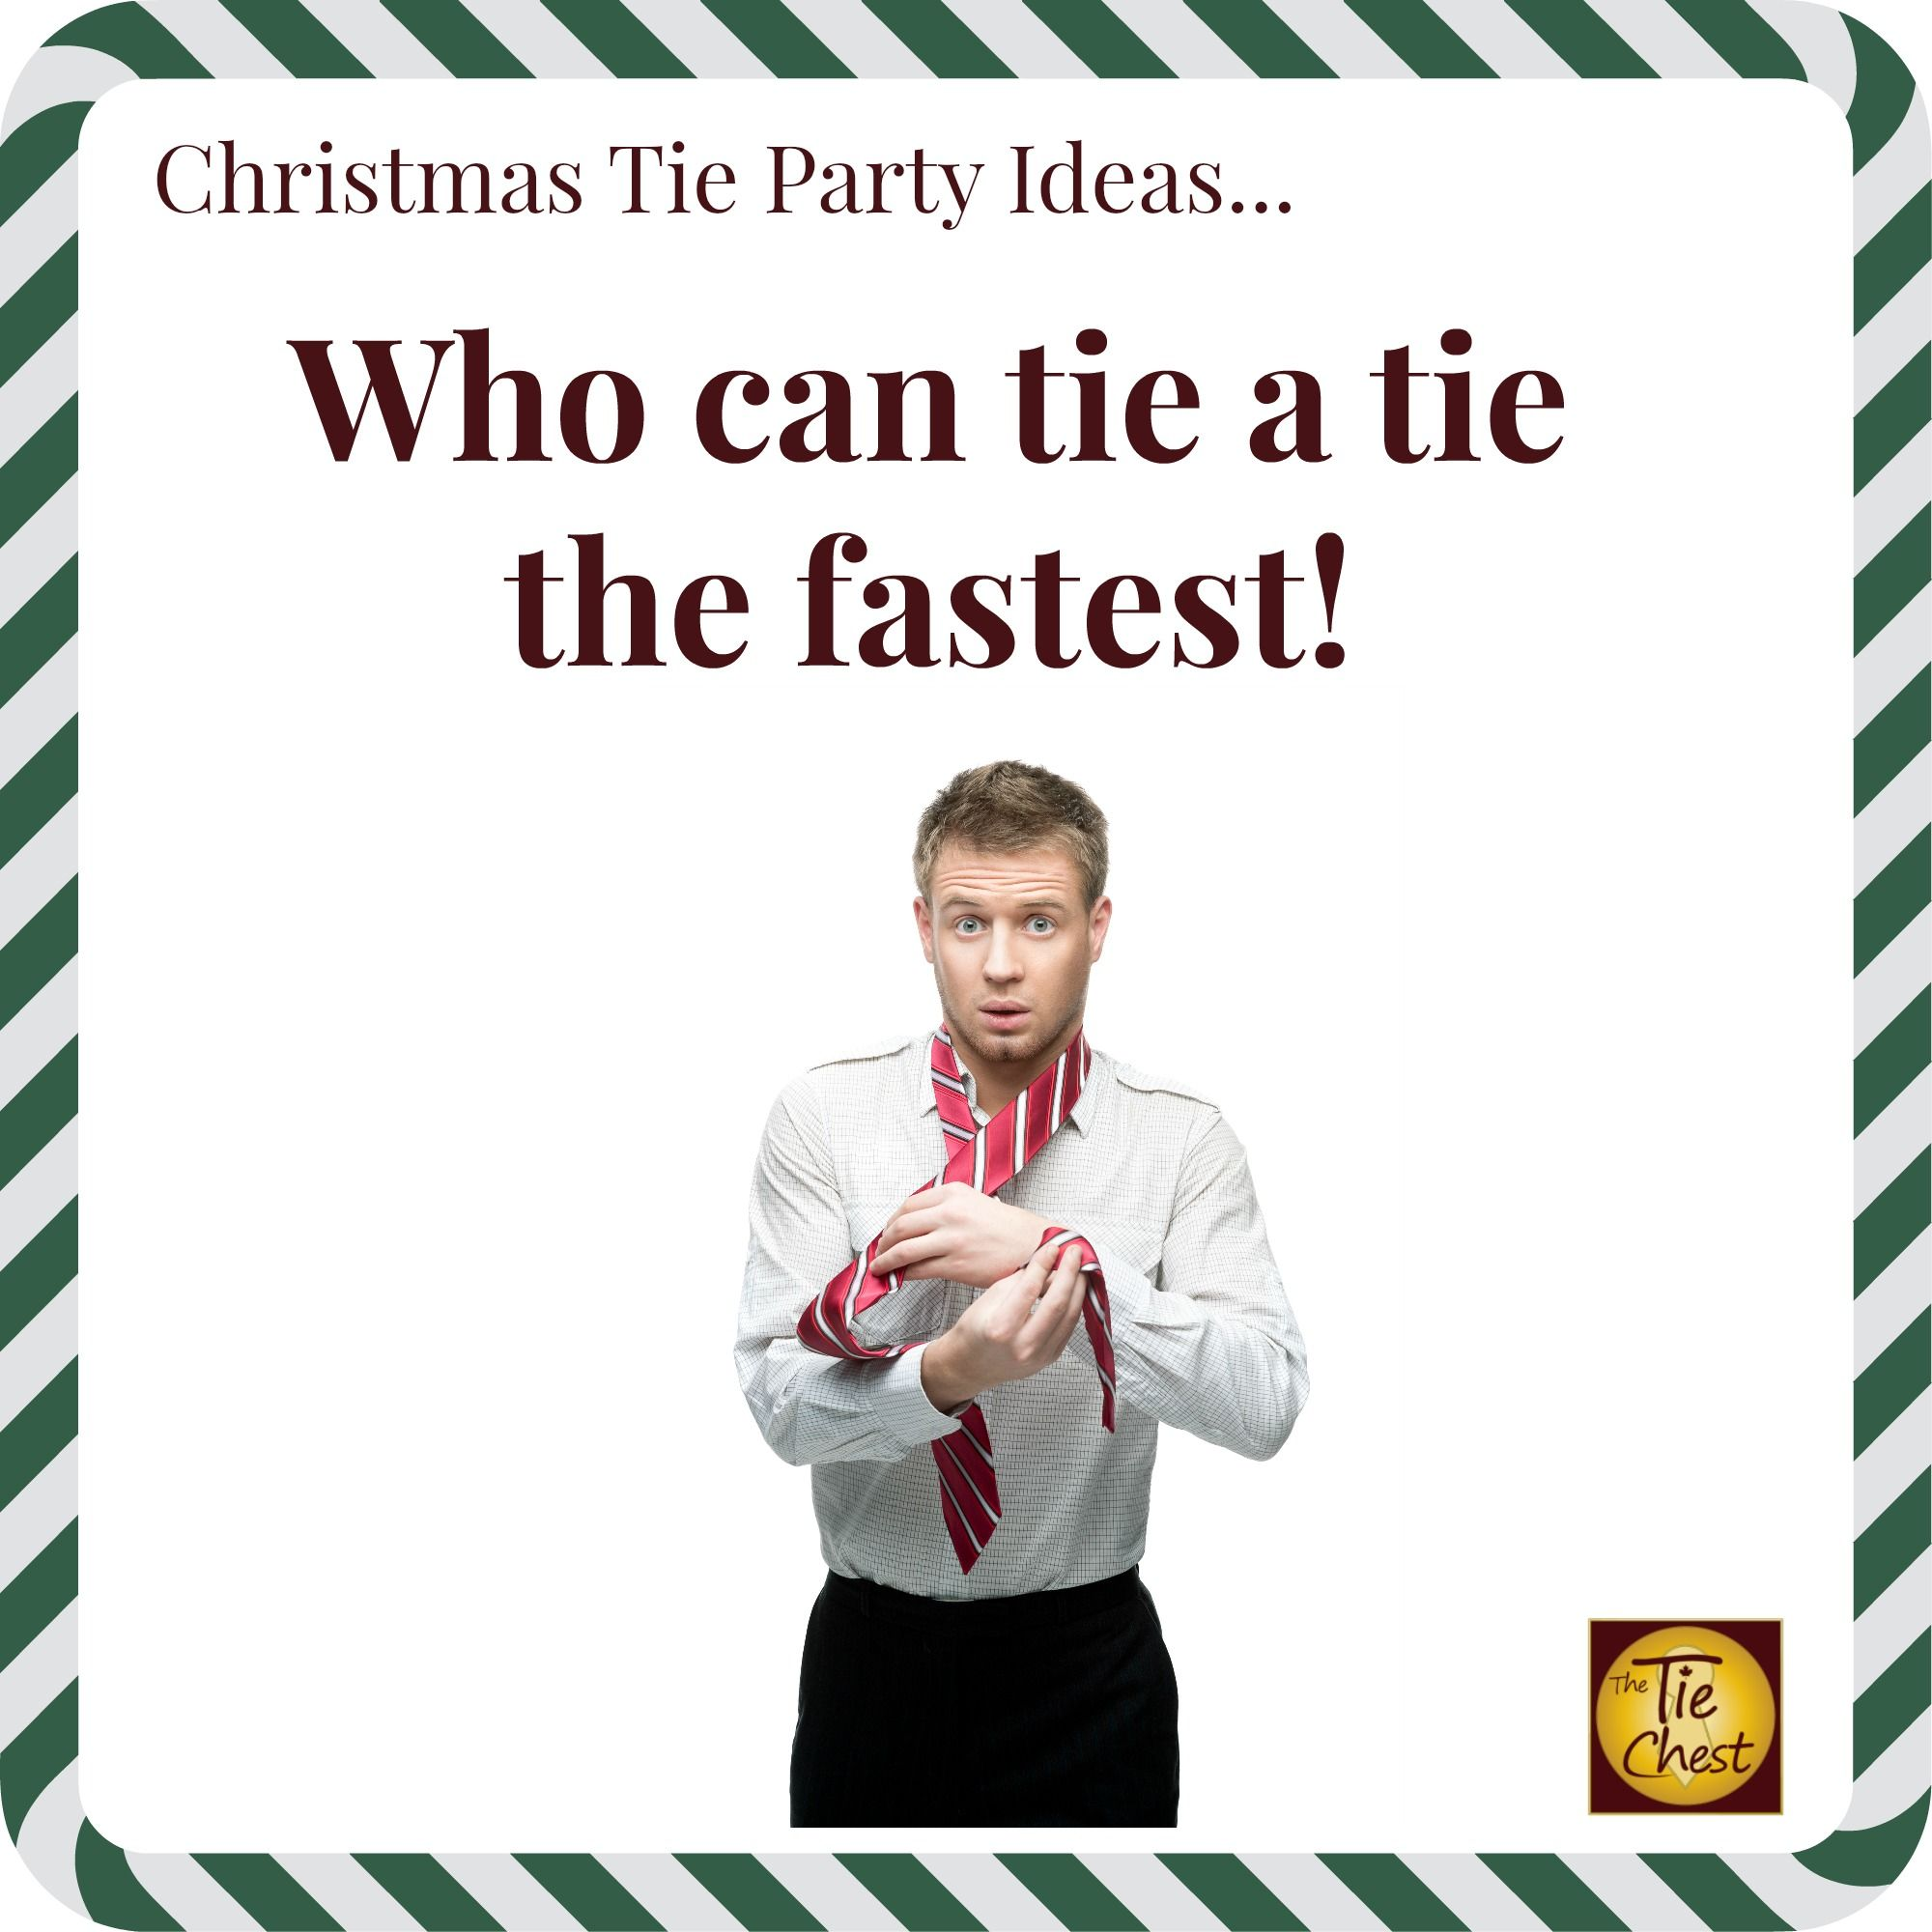 Fun contest idea for an Ugly Christmas Tie party! | Fun Christmas ...